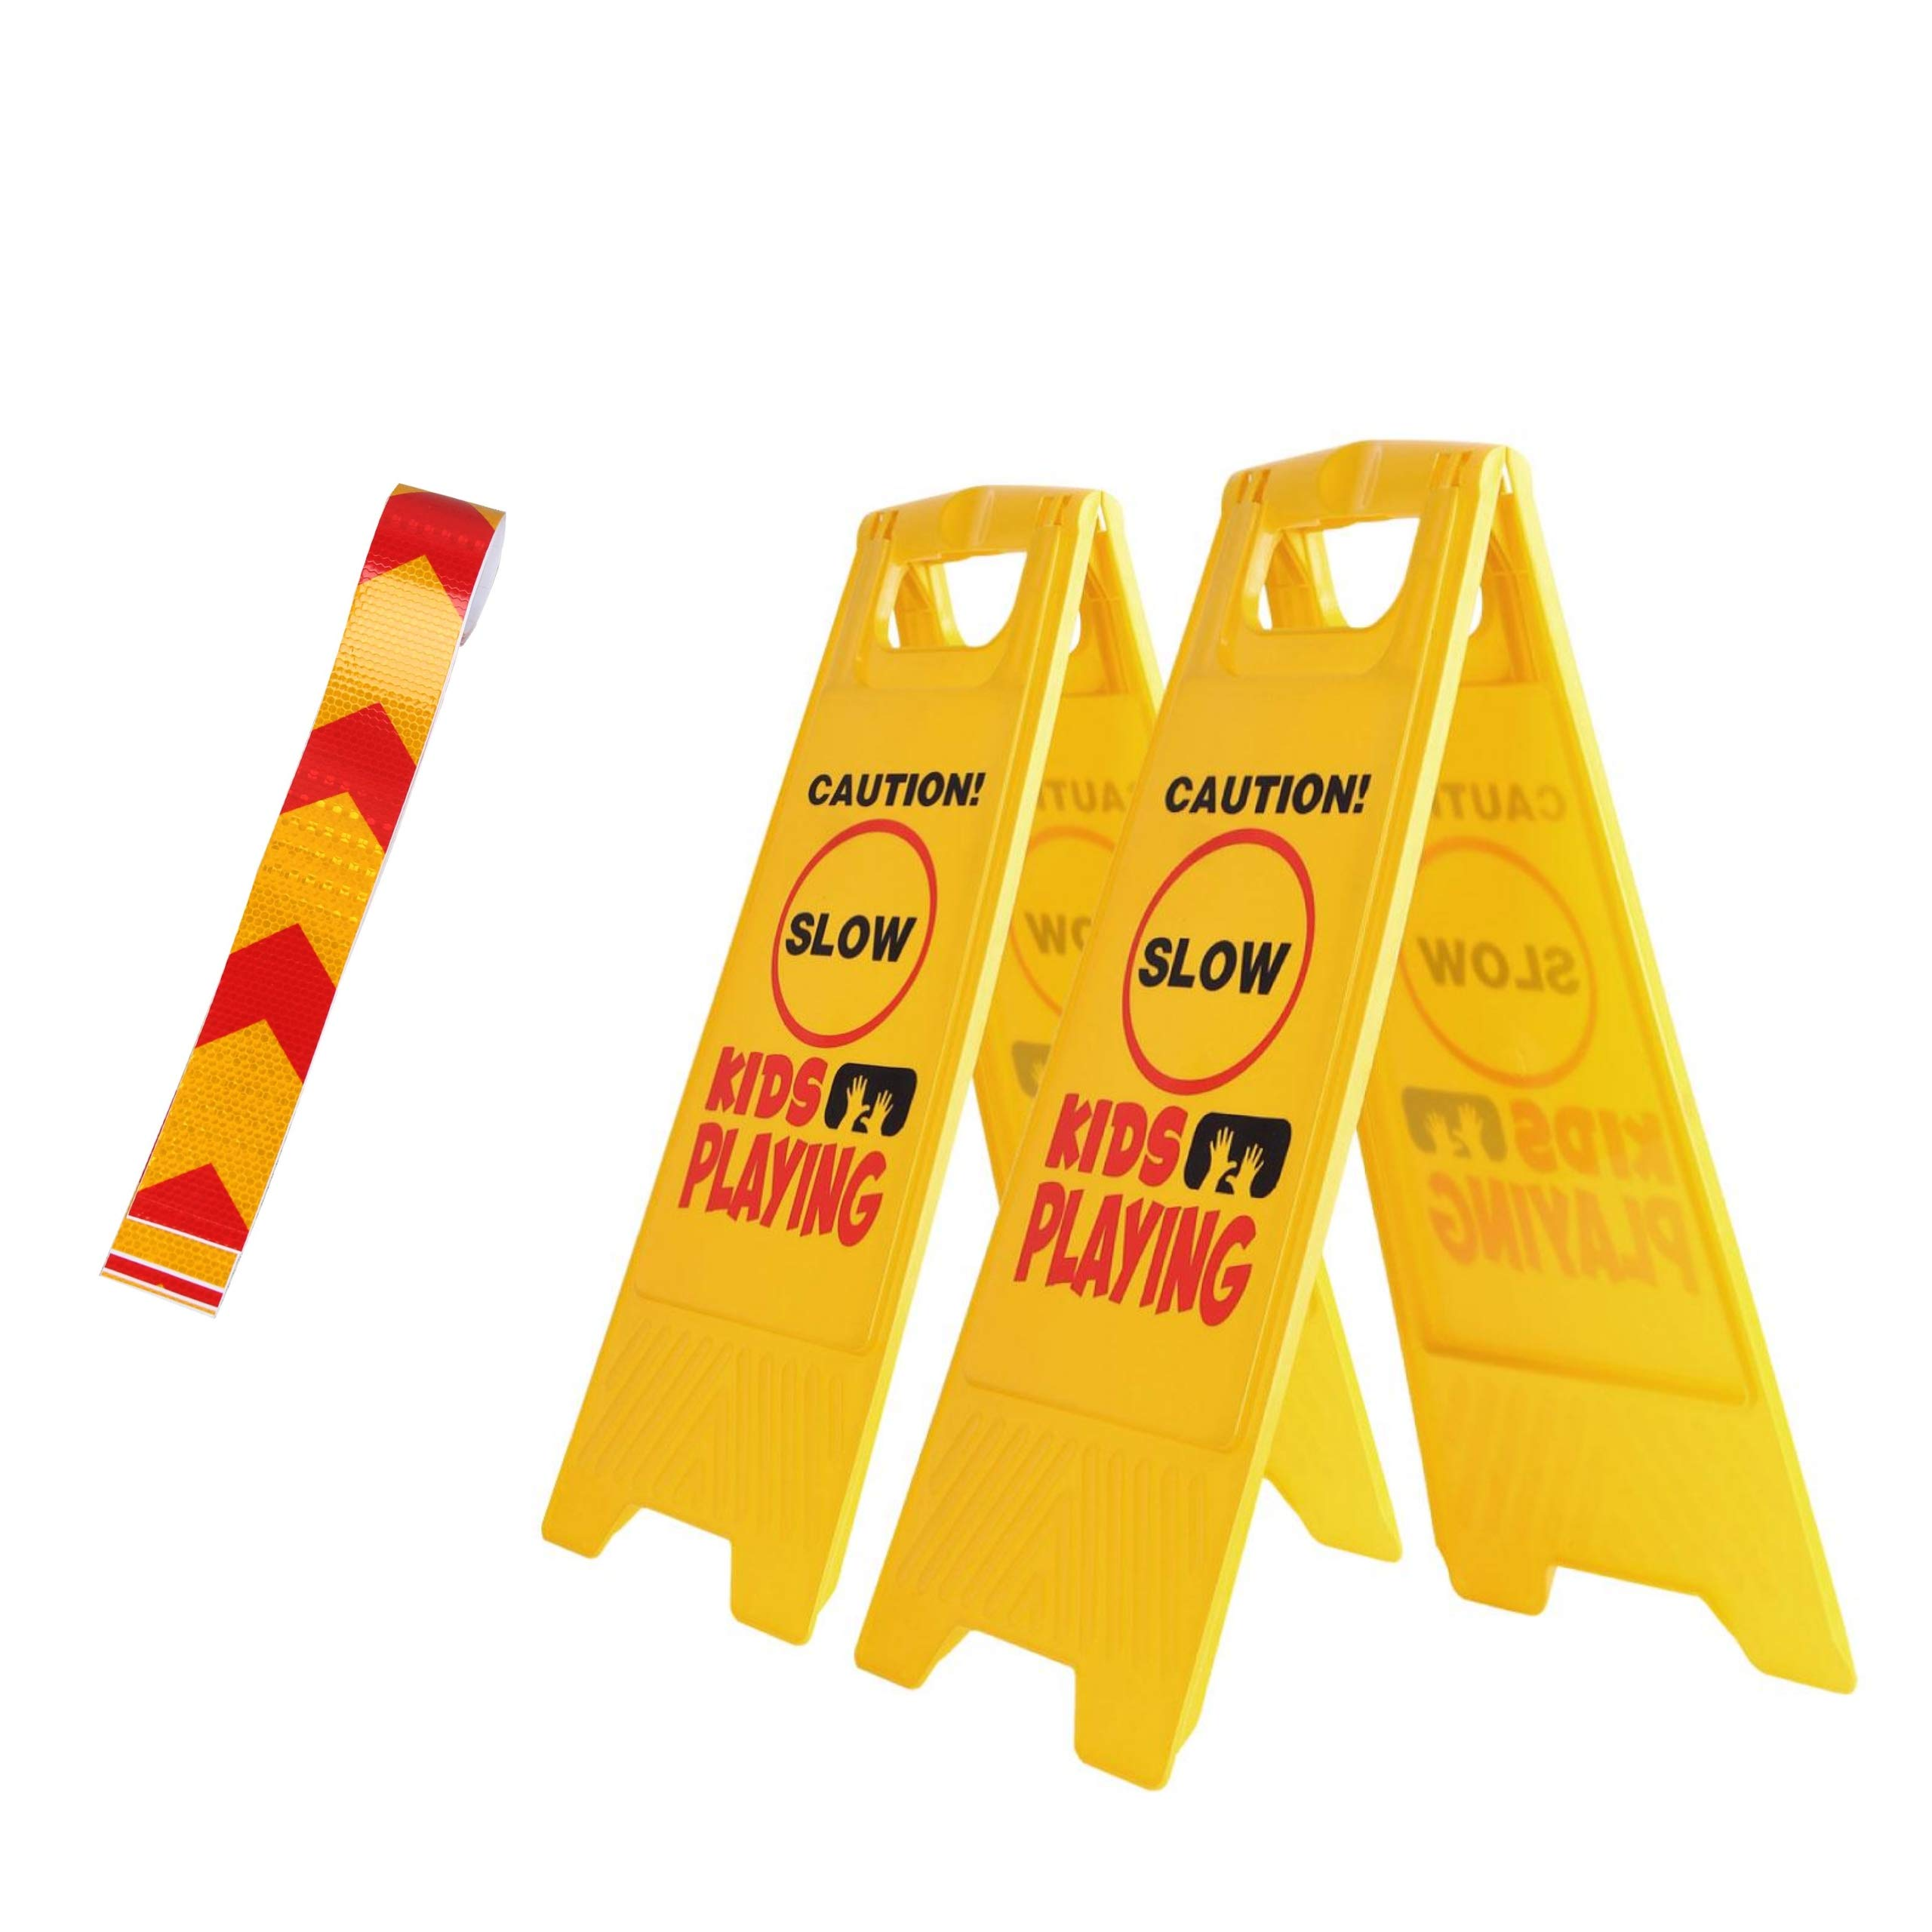 2 Pack Kid Playing Caution Sign - Children Safety Slow Road Yard Sign - Double Sided Sign Bundled with Reflective Tape by Budgetizer